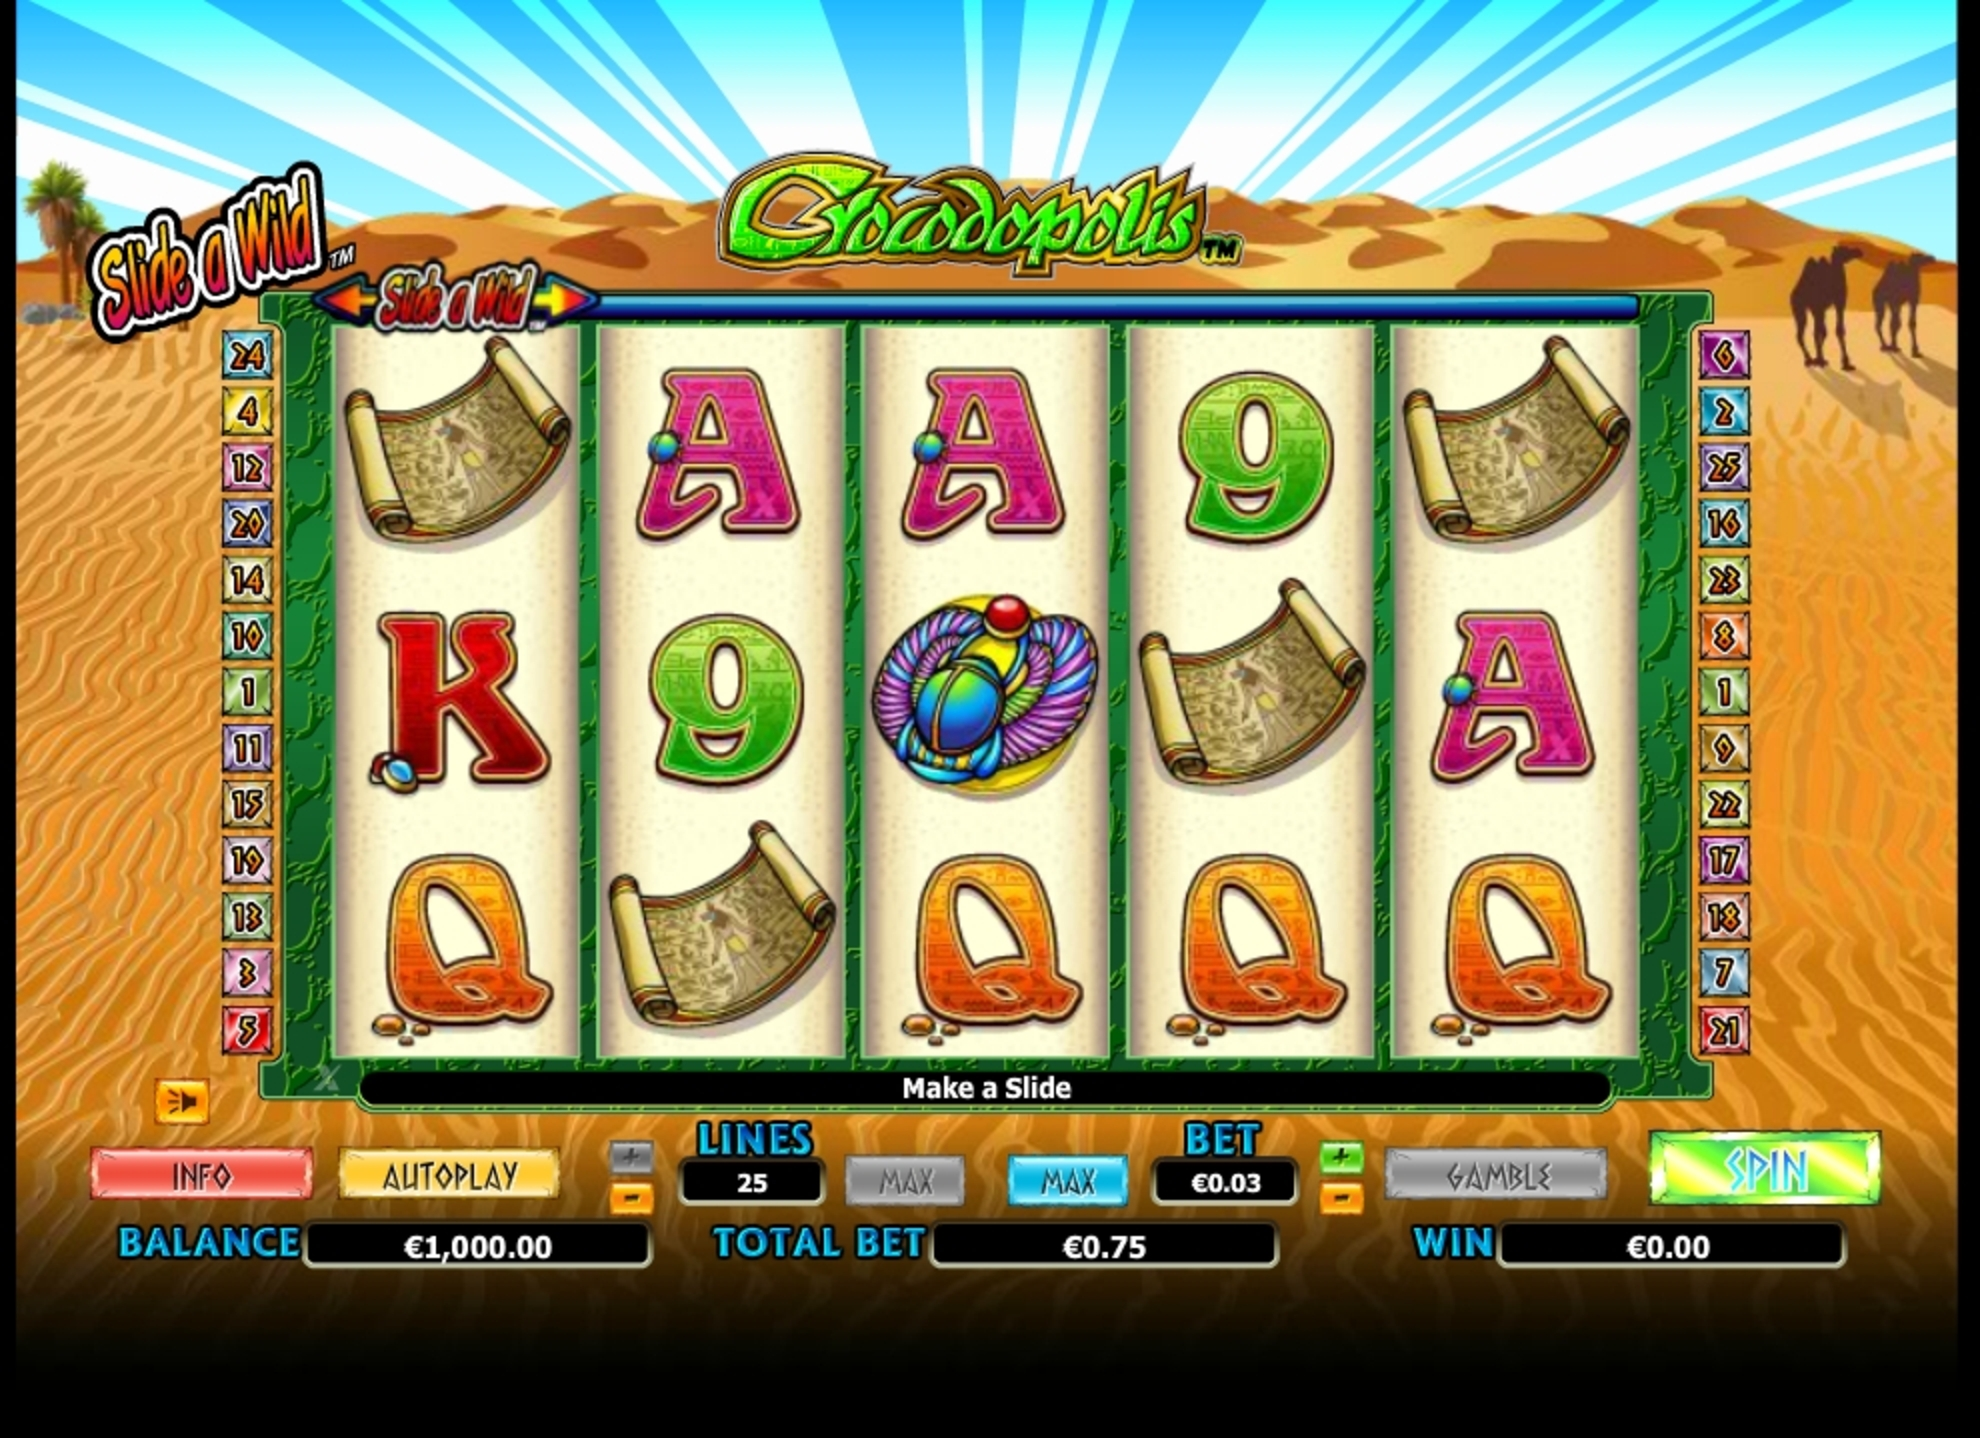 Reels in Crocodopolis Slot Game by NextGen